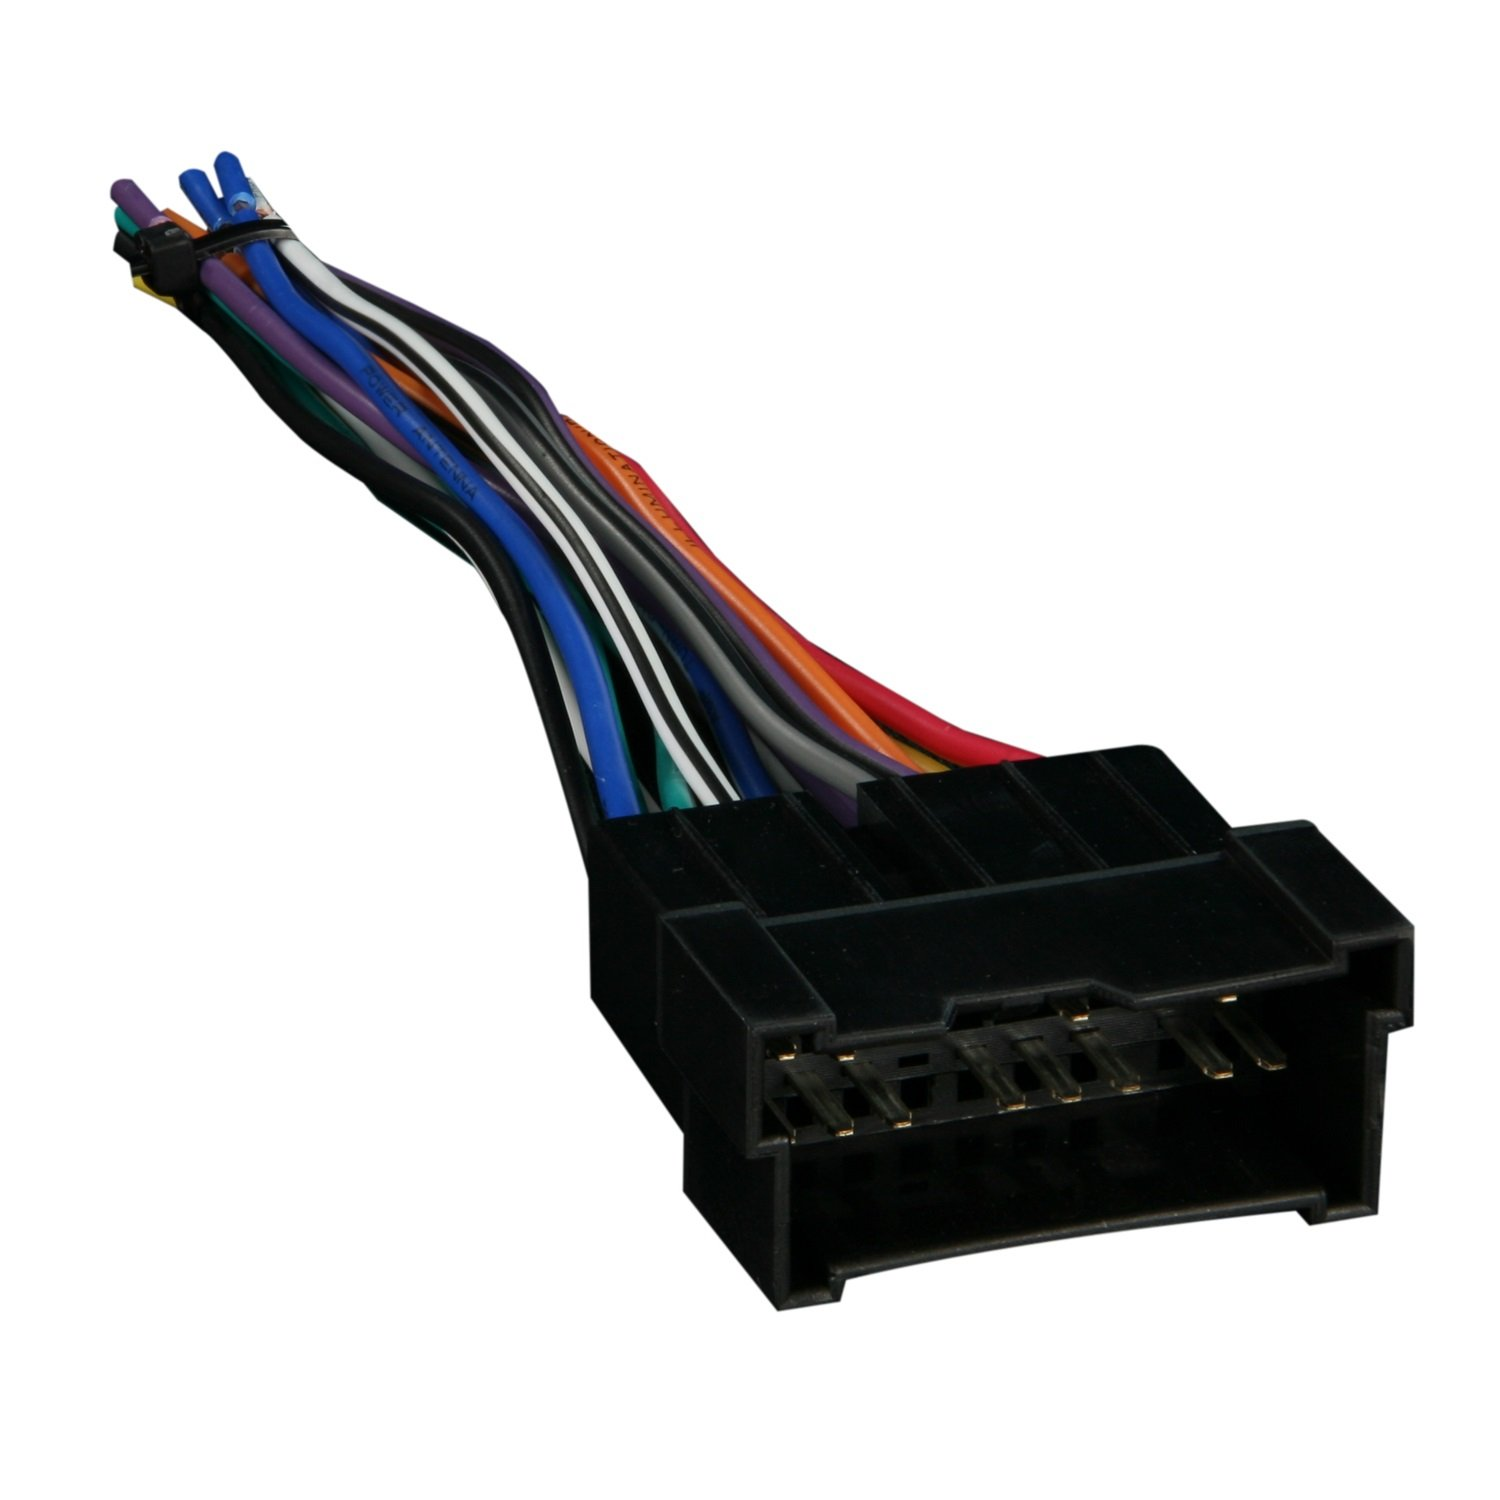 617yeBmOquL._SL1500_ amazon com metra 70 7301 radio wiring harness for hyundai kia 99 GM Factory Radio Wiring Harness at mifinder.co